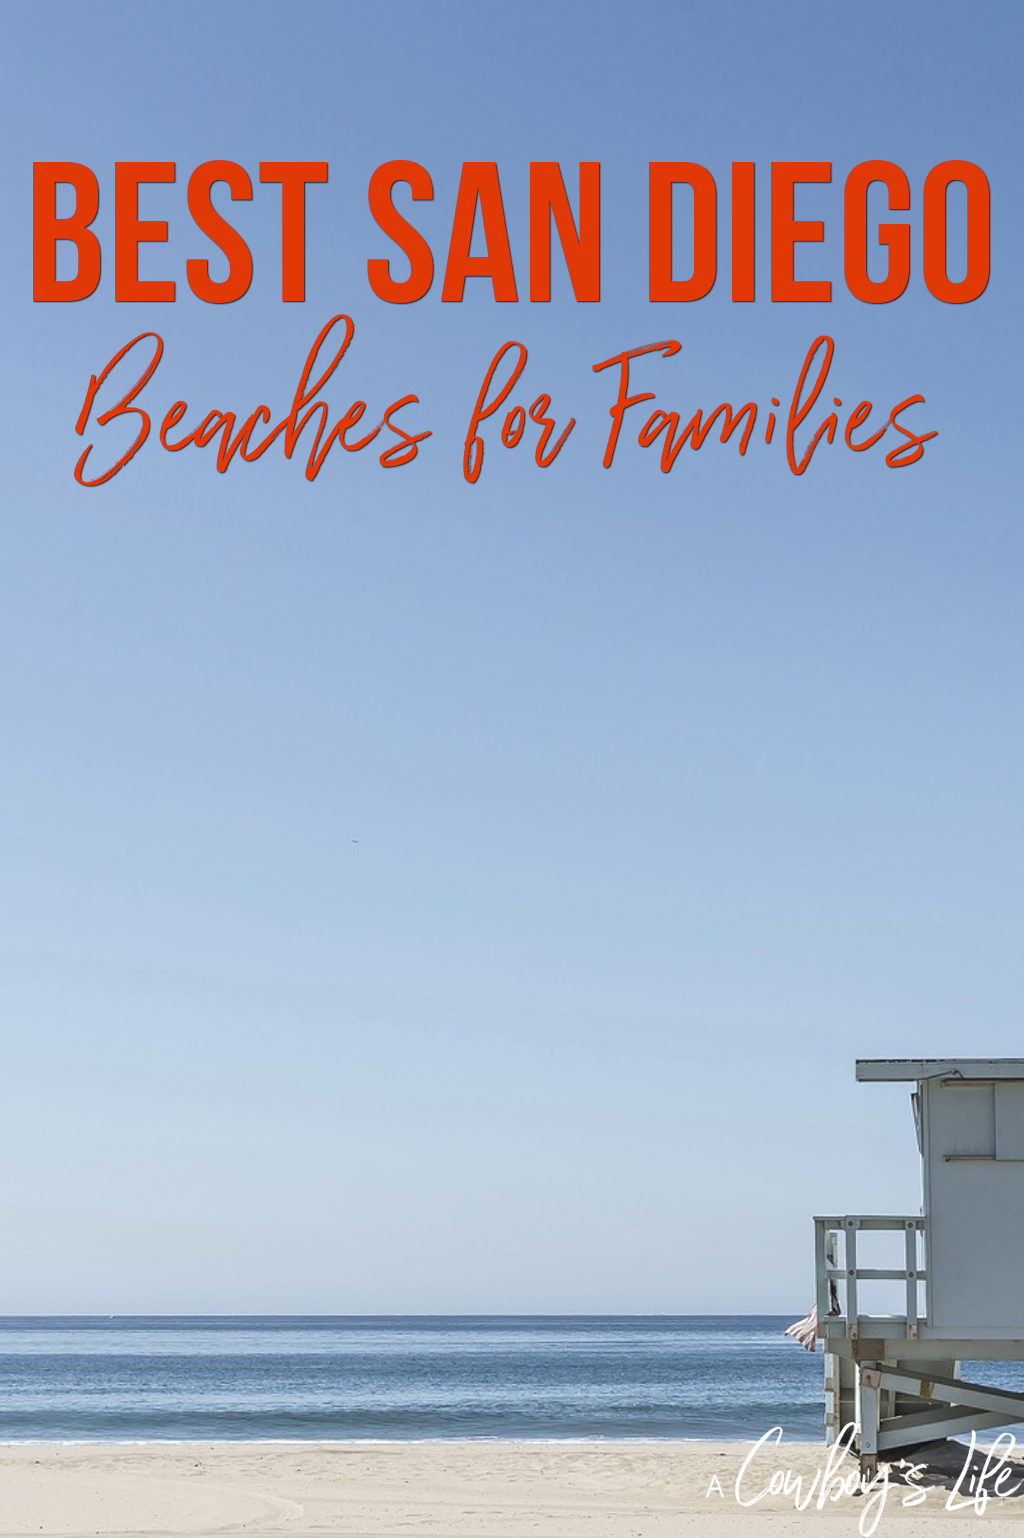 Best San Diego Beaches for Families | San Diego Vacation | Beach Vacation | California Beaches | San Diego Beaches | Southern California #sandiego #sandiegovacation #californiabeaches #beachvacation